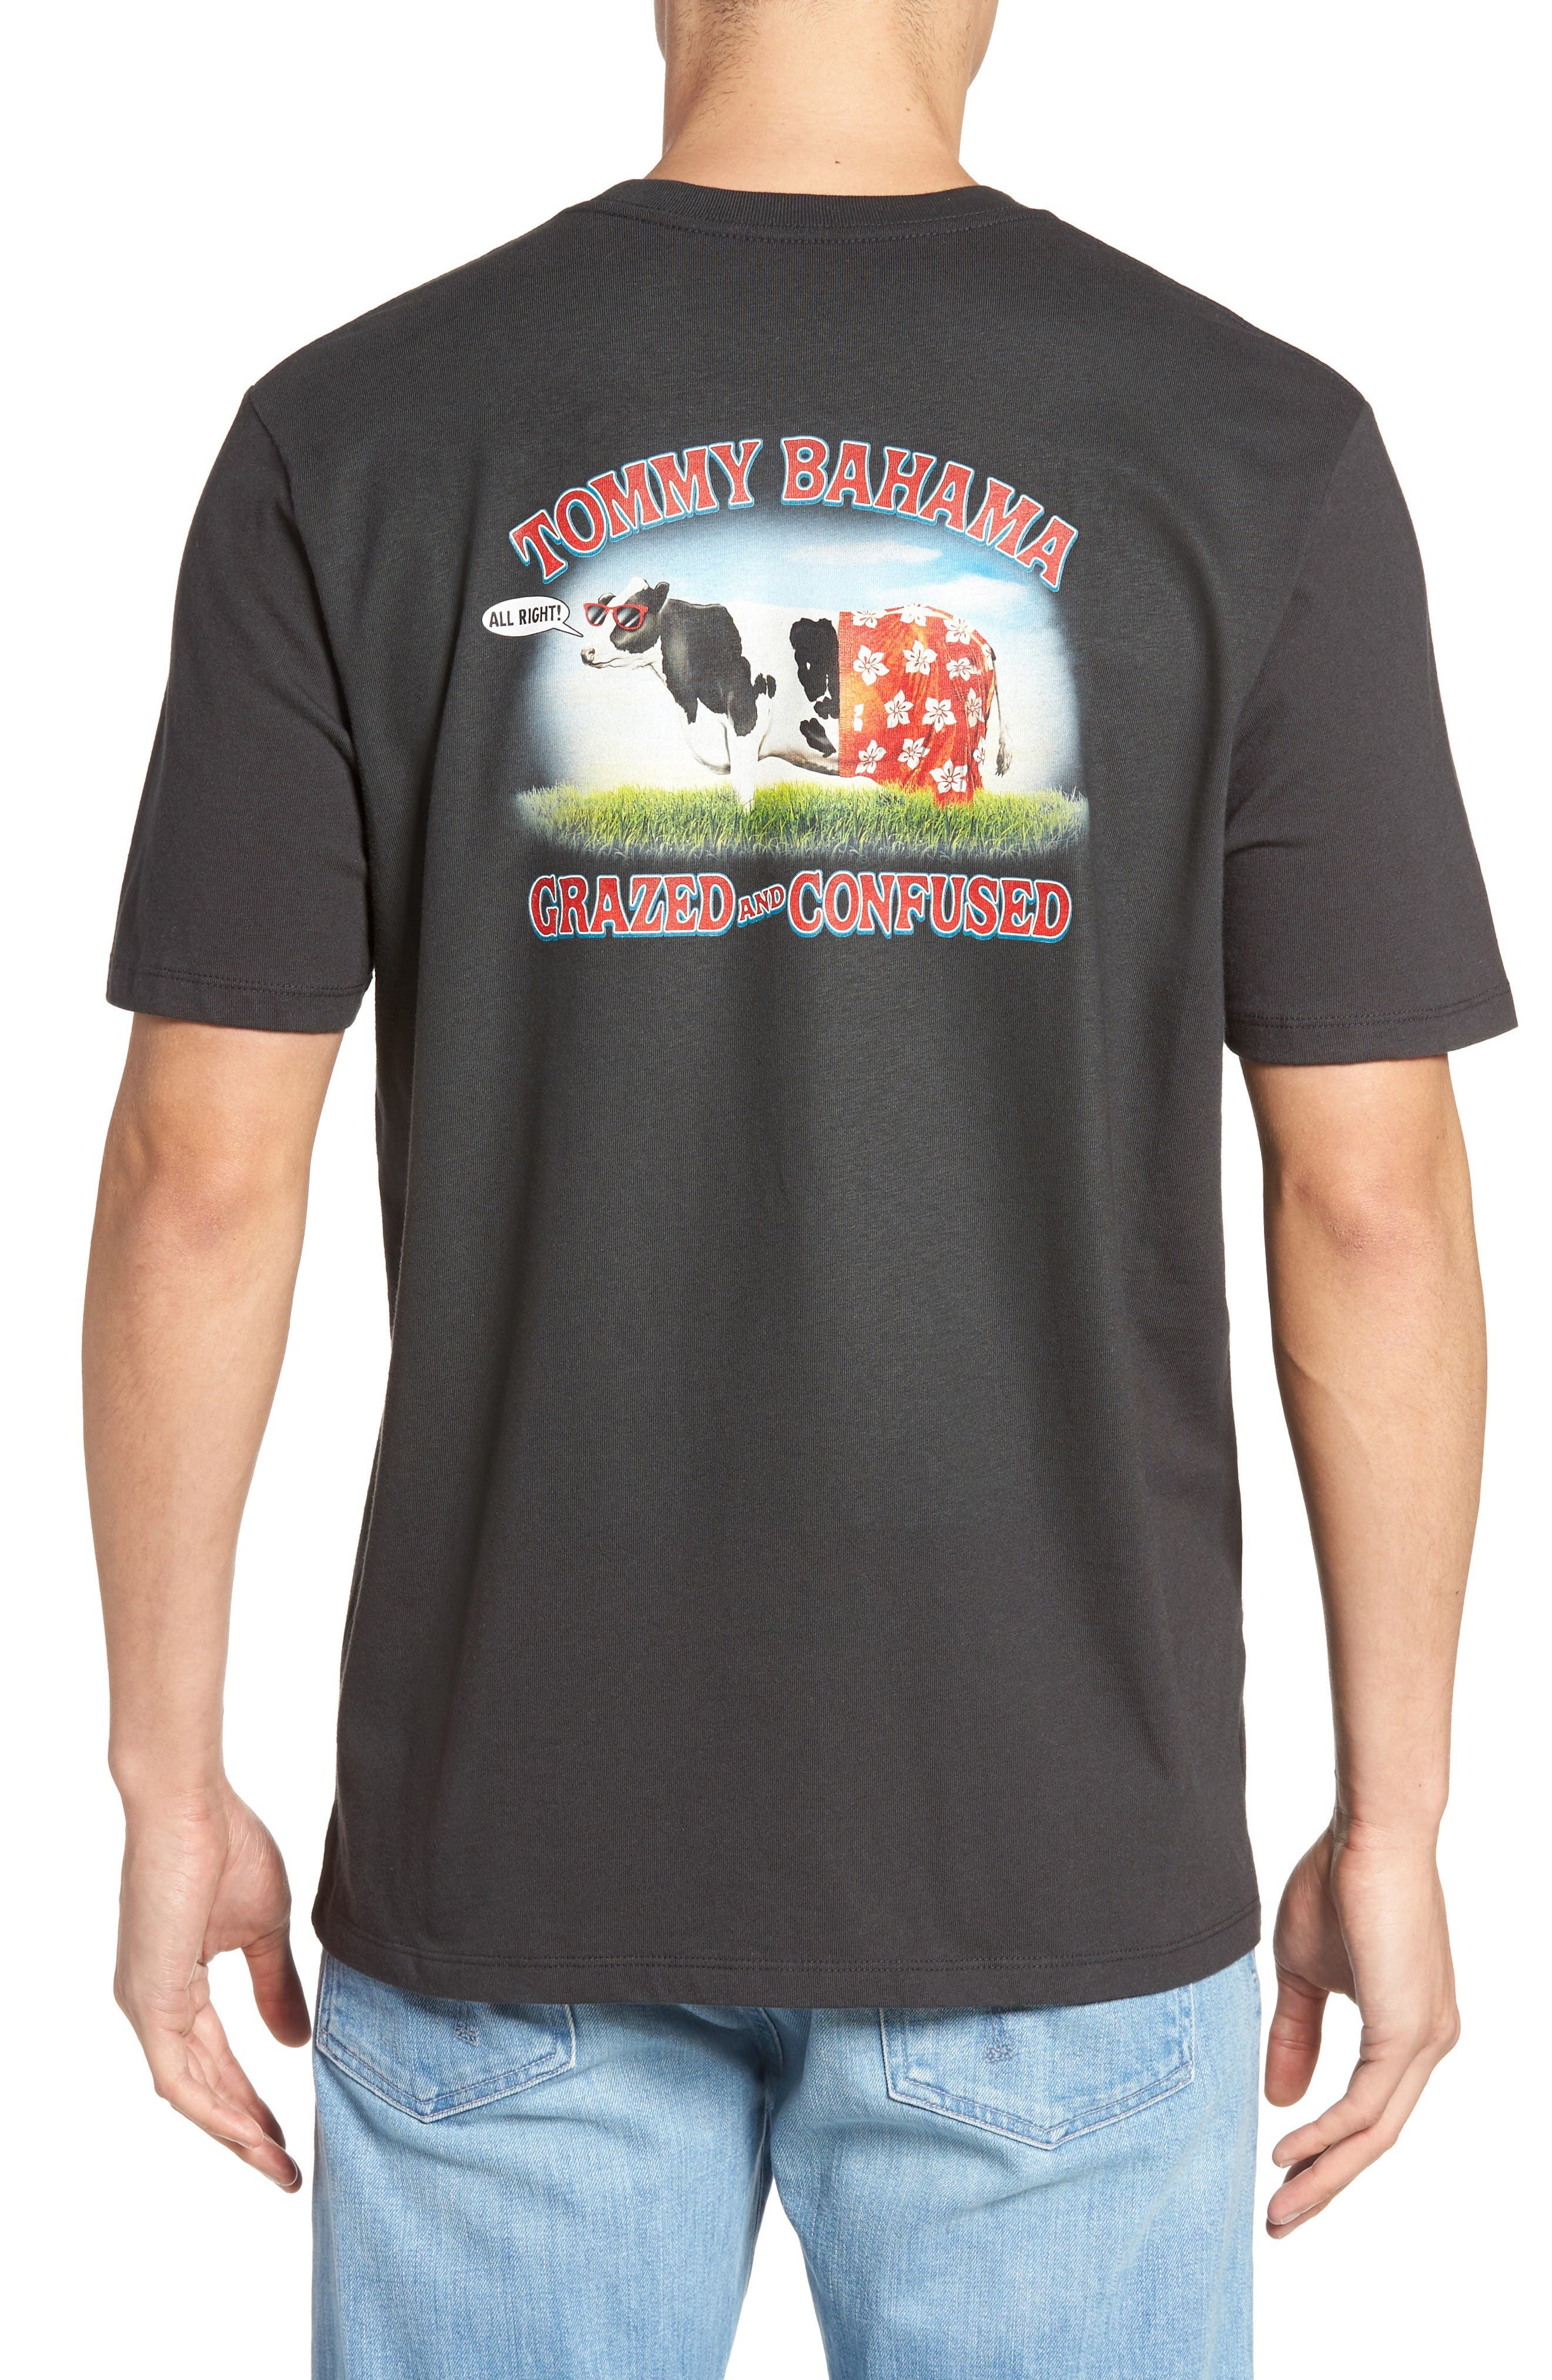 Main Image - Tommy Bahama Grazed and Confused Graphic T-Shirt